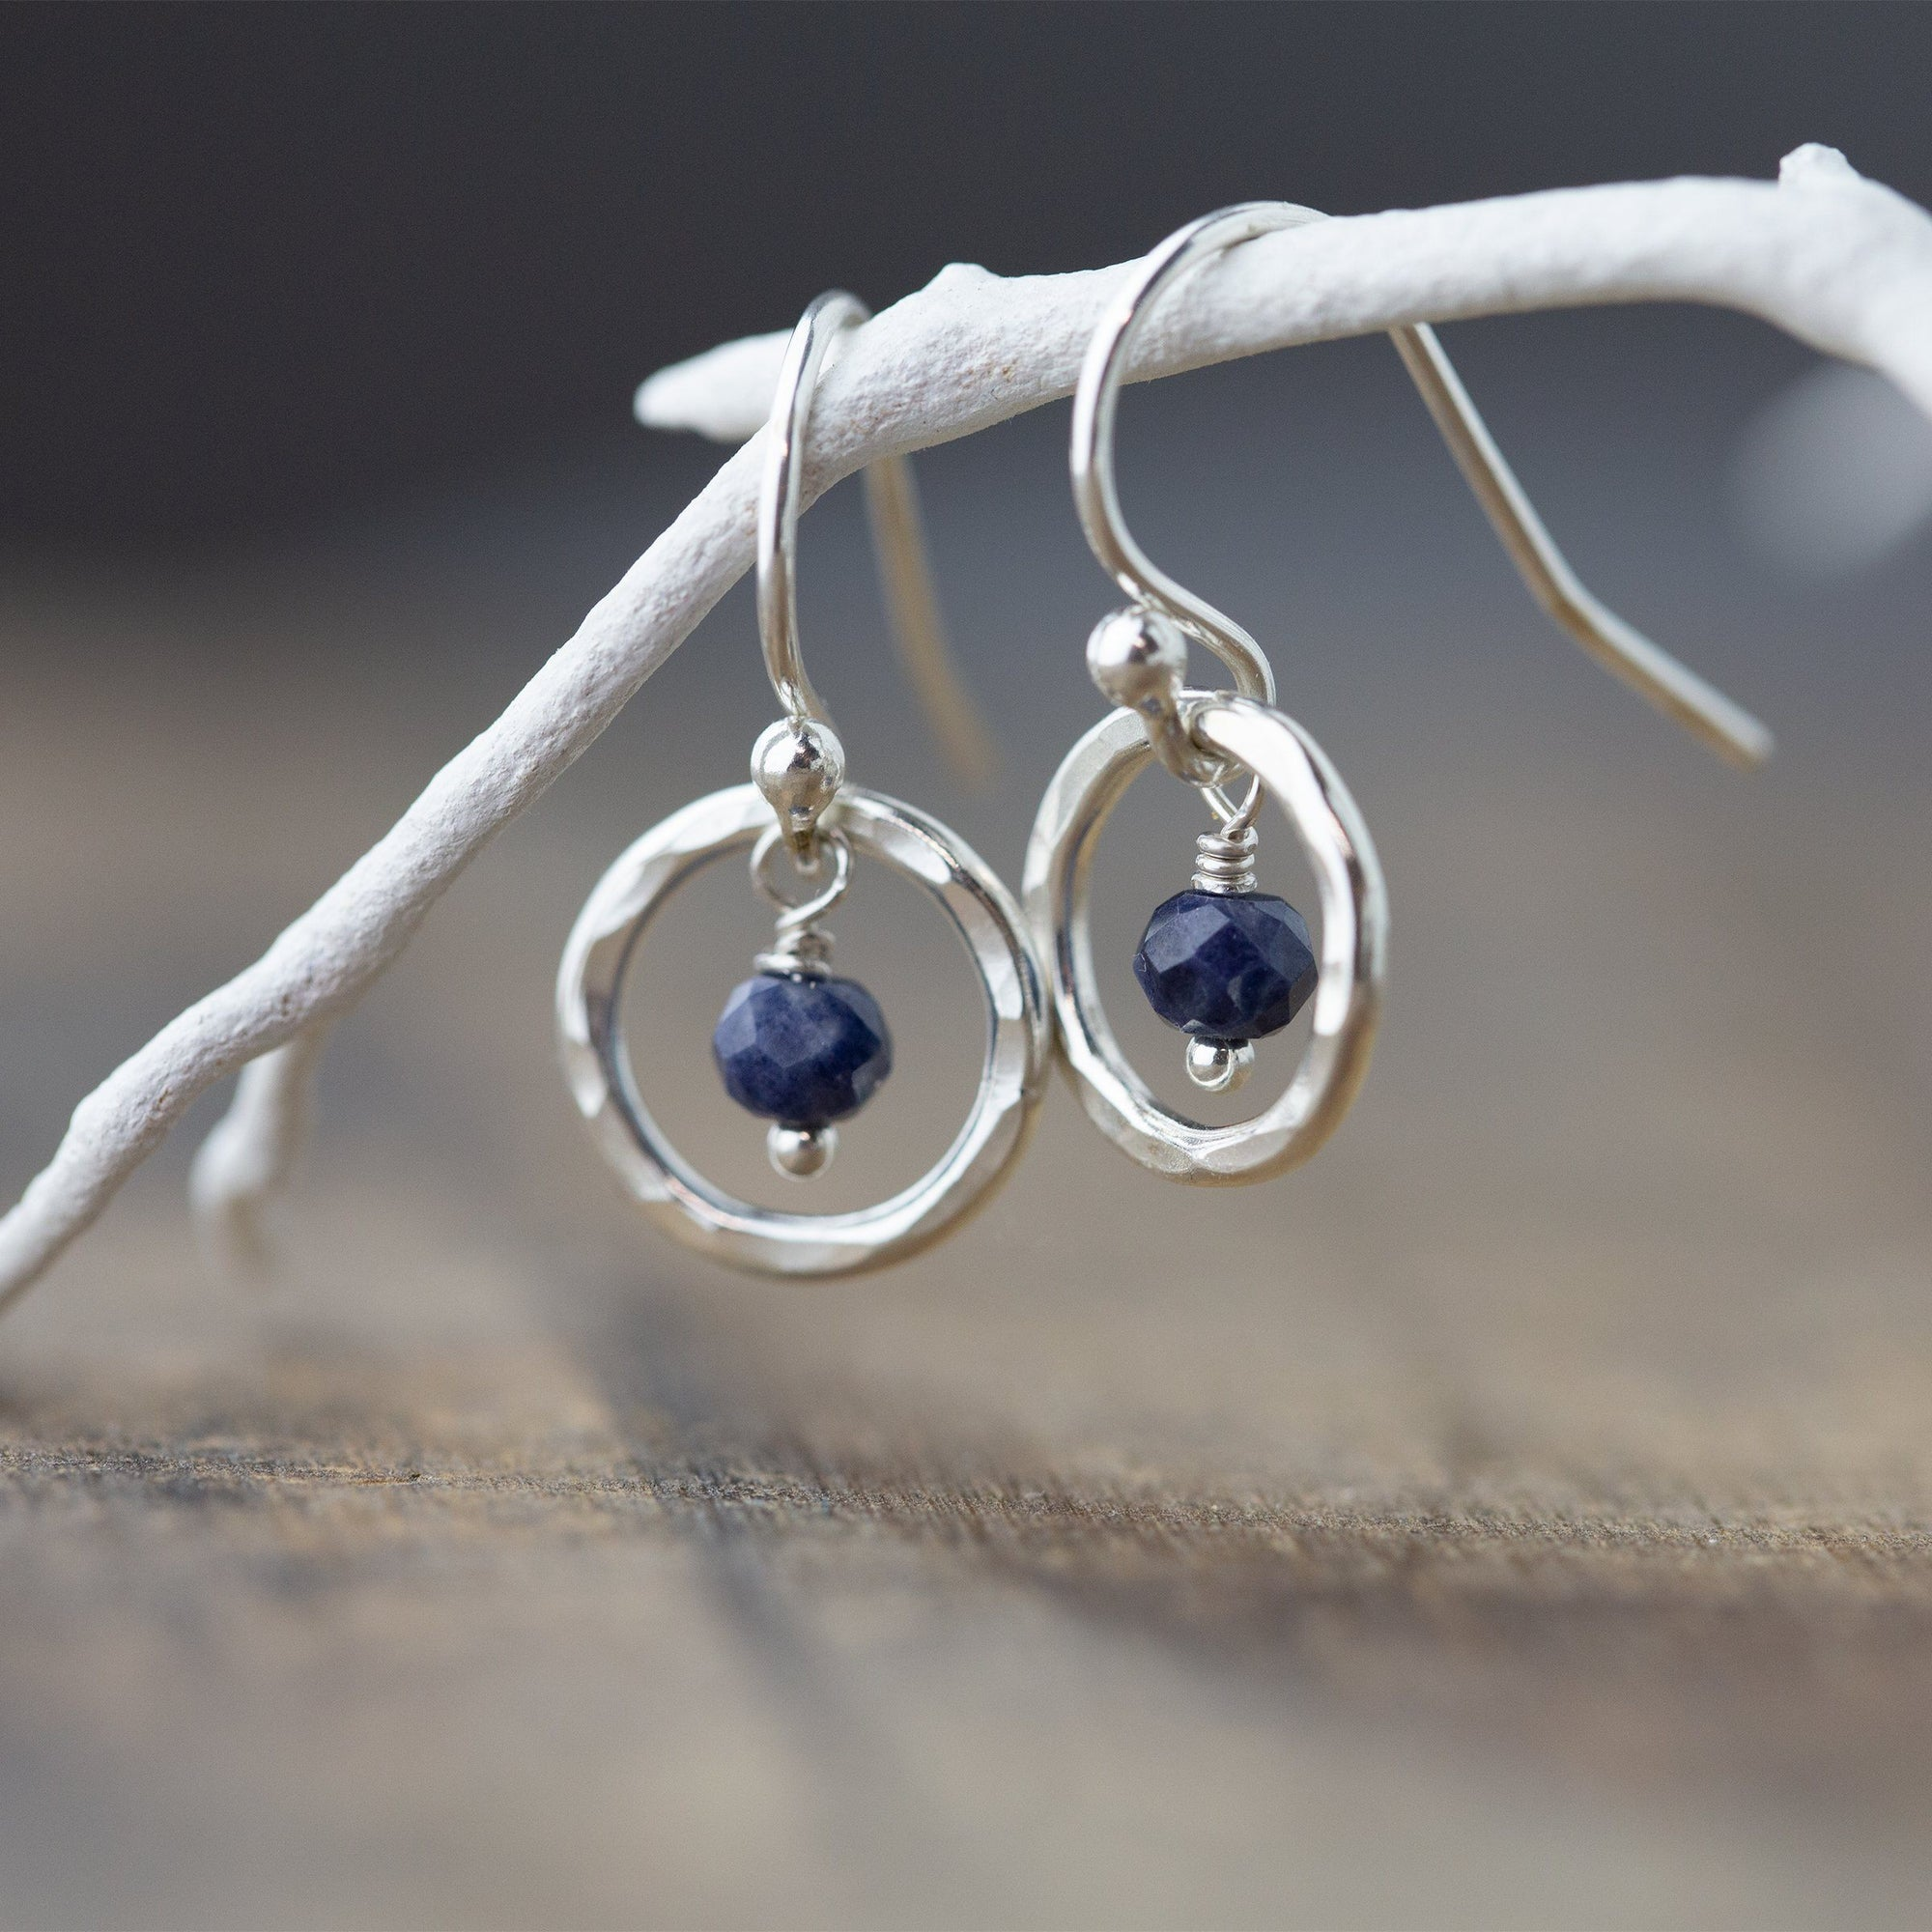 Sapphire Hammered Circle Earrings - Handmade Jewelry by Burnish